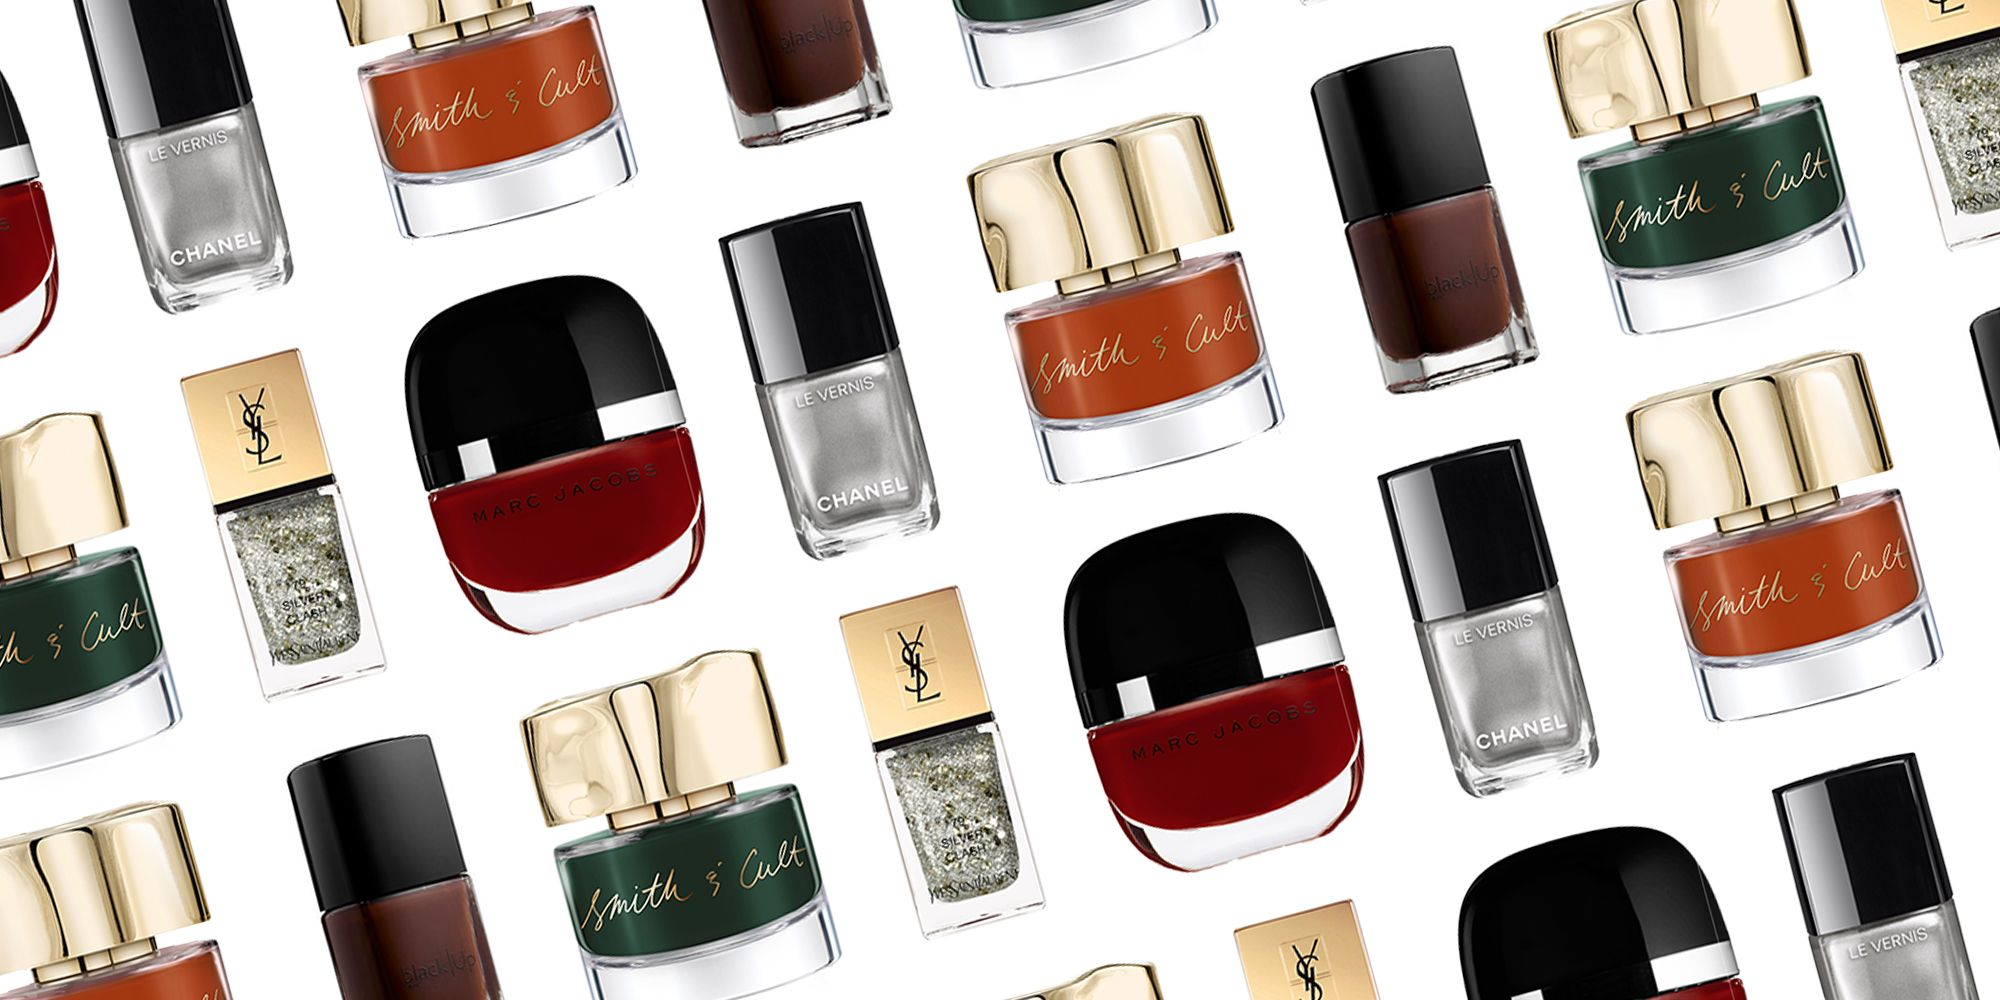 19 Trendy Winter Nail Polish Colors - 2017 Winter Nail Polishes to Try